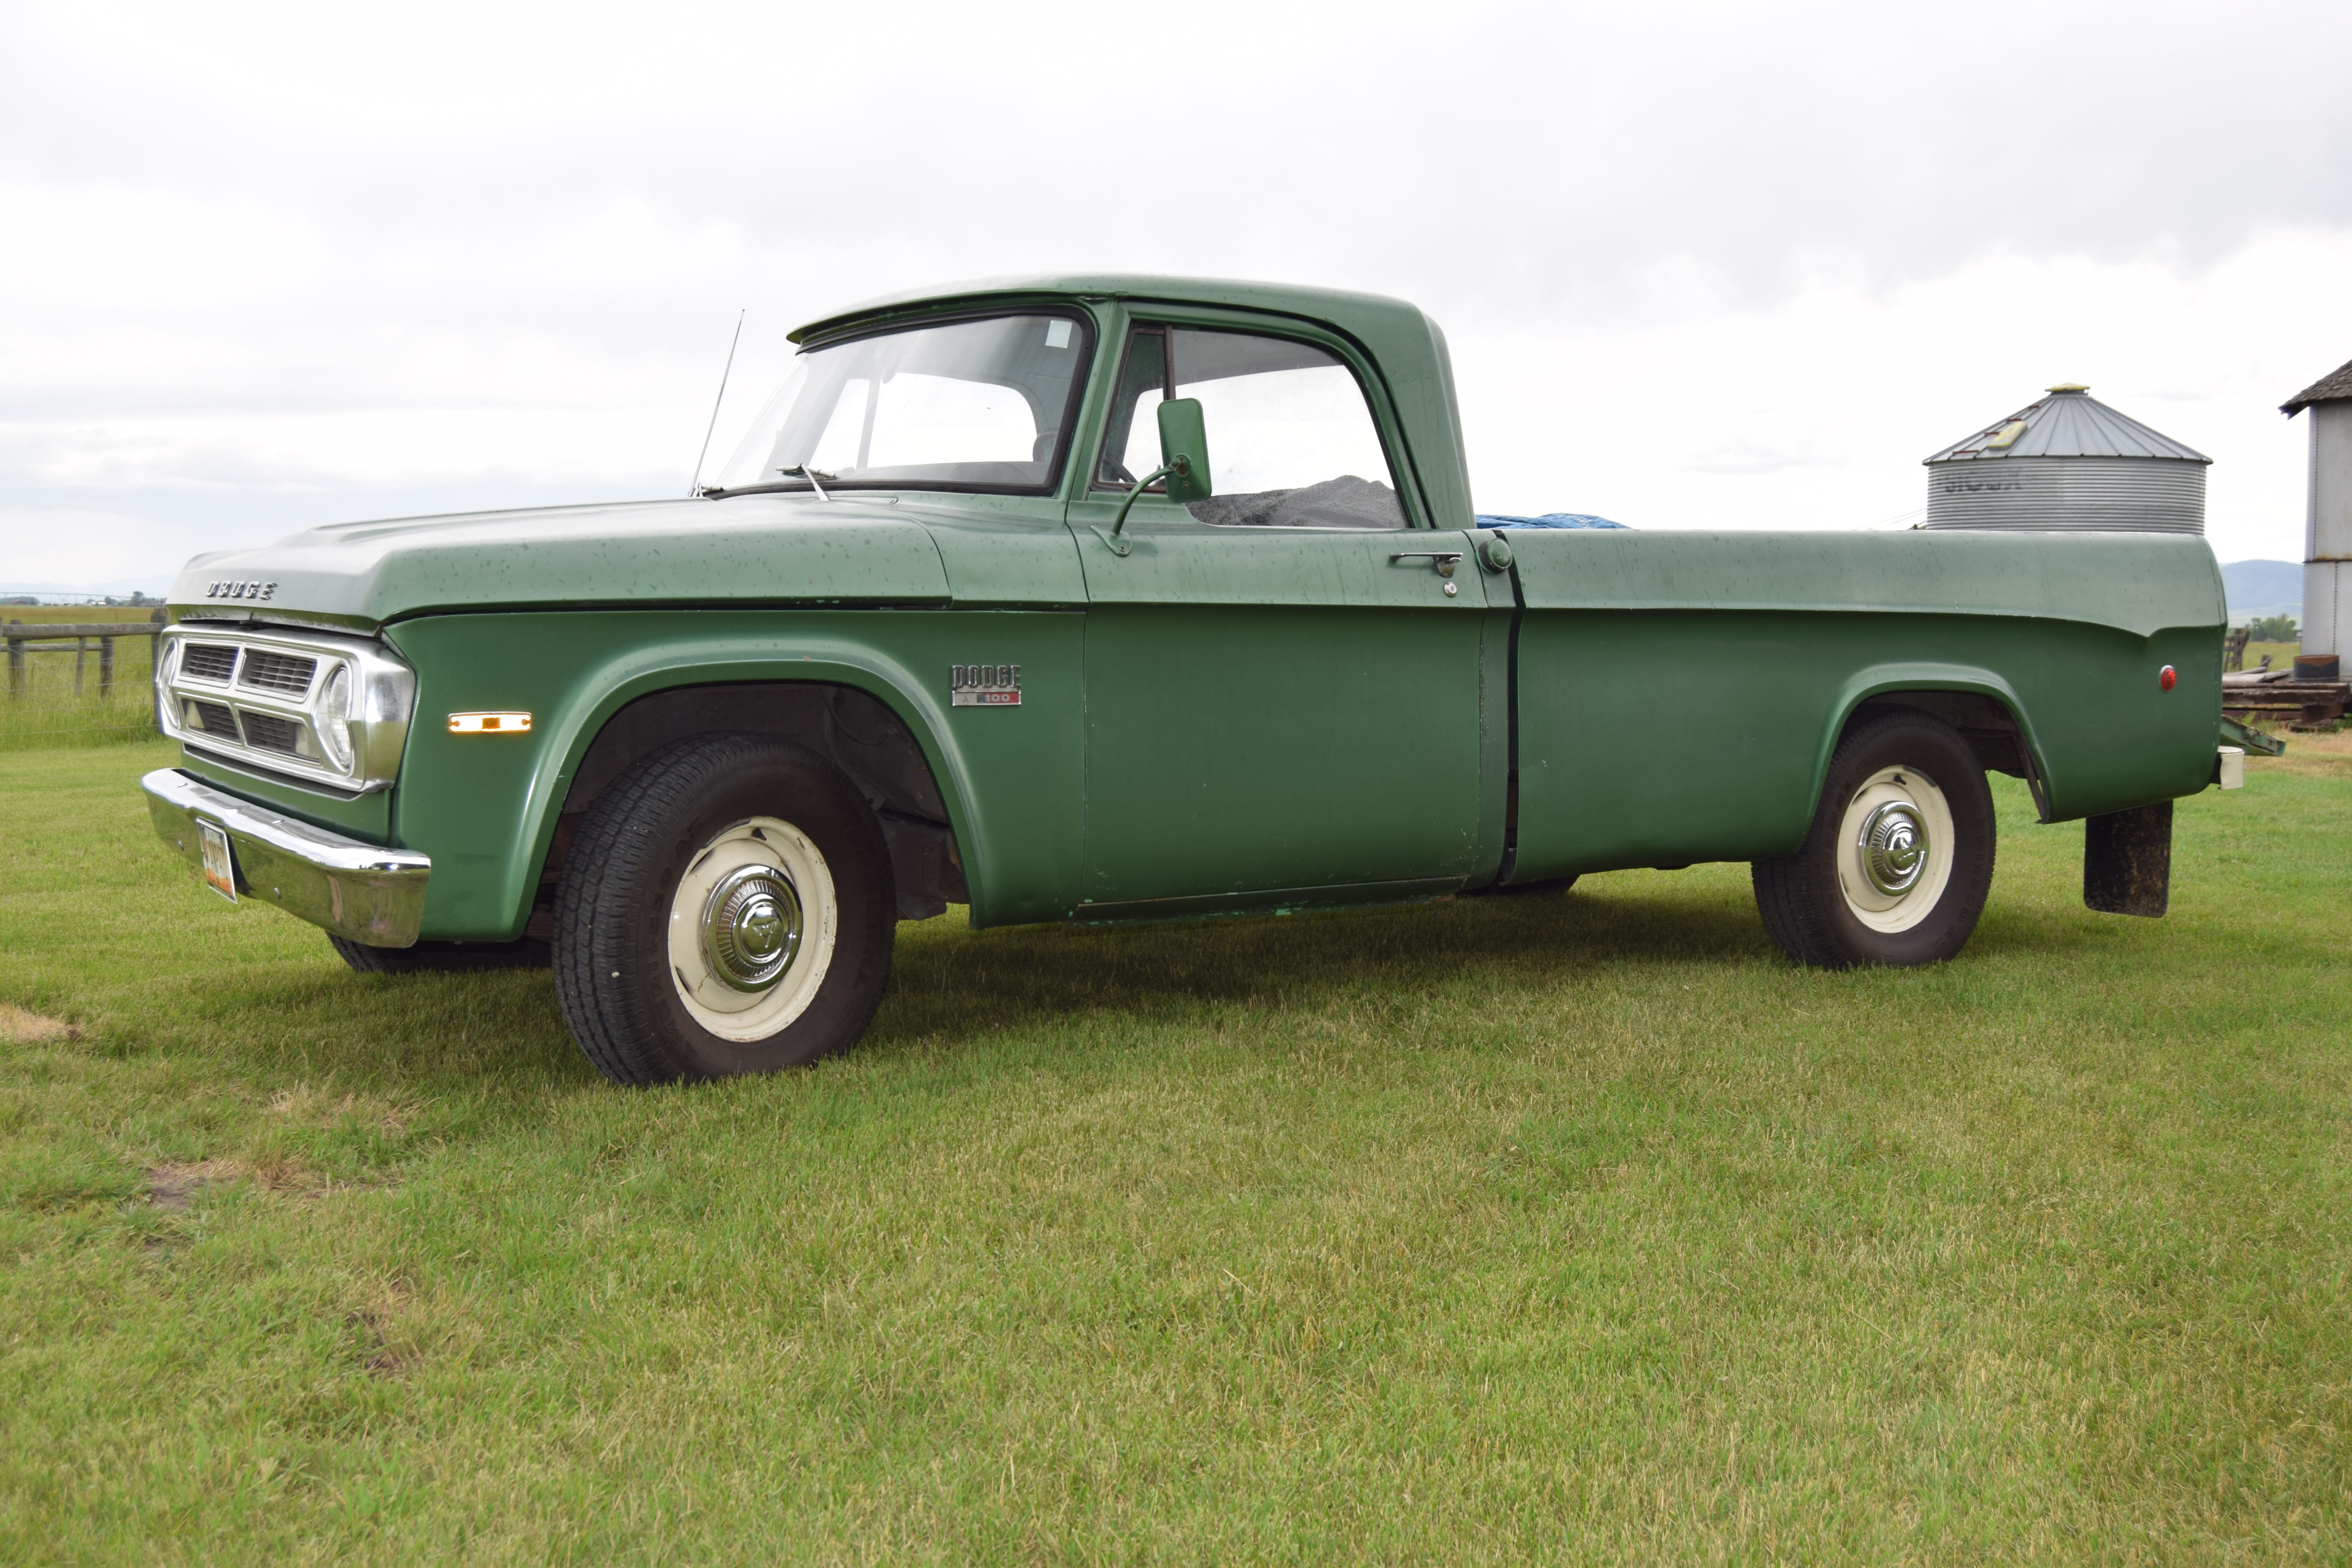 1970 Dodge Pickup Truck image 1